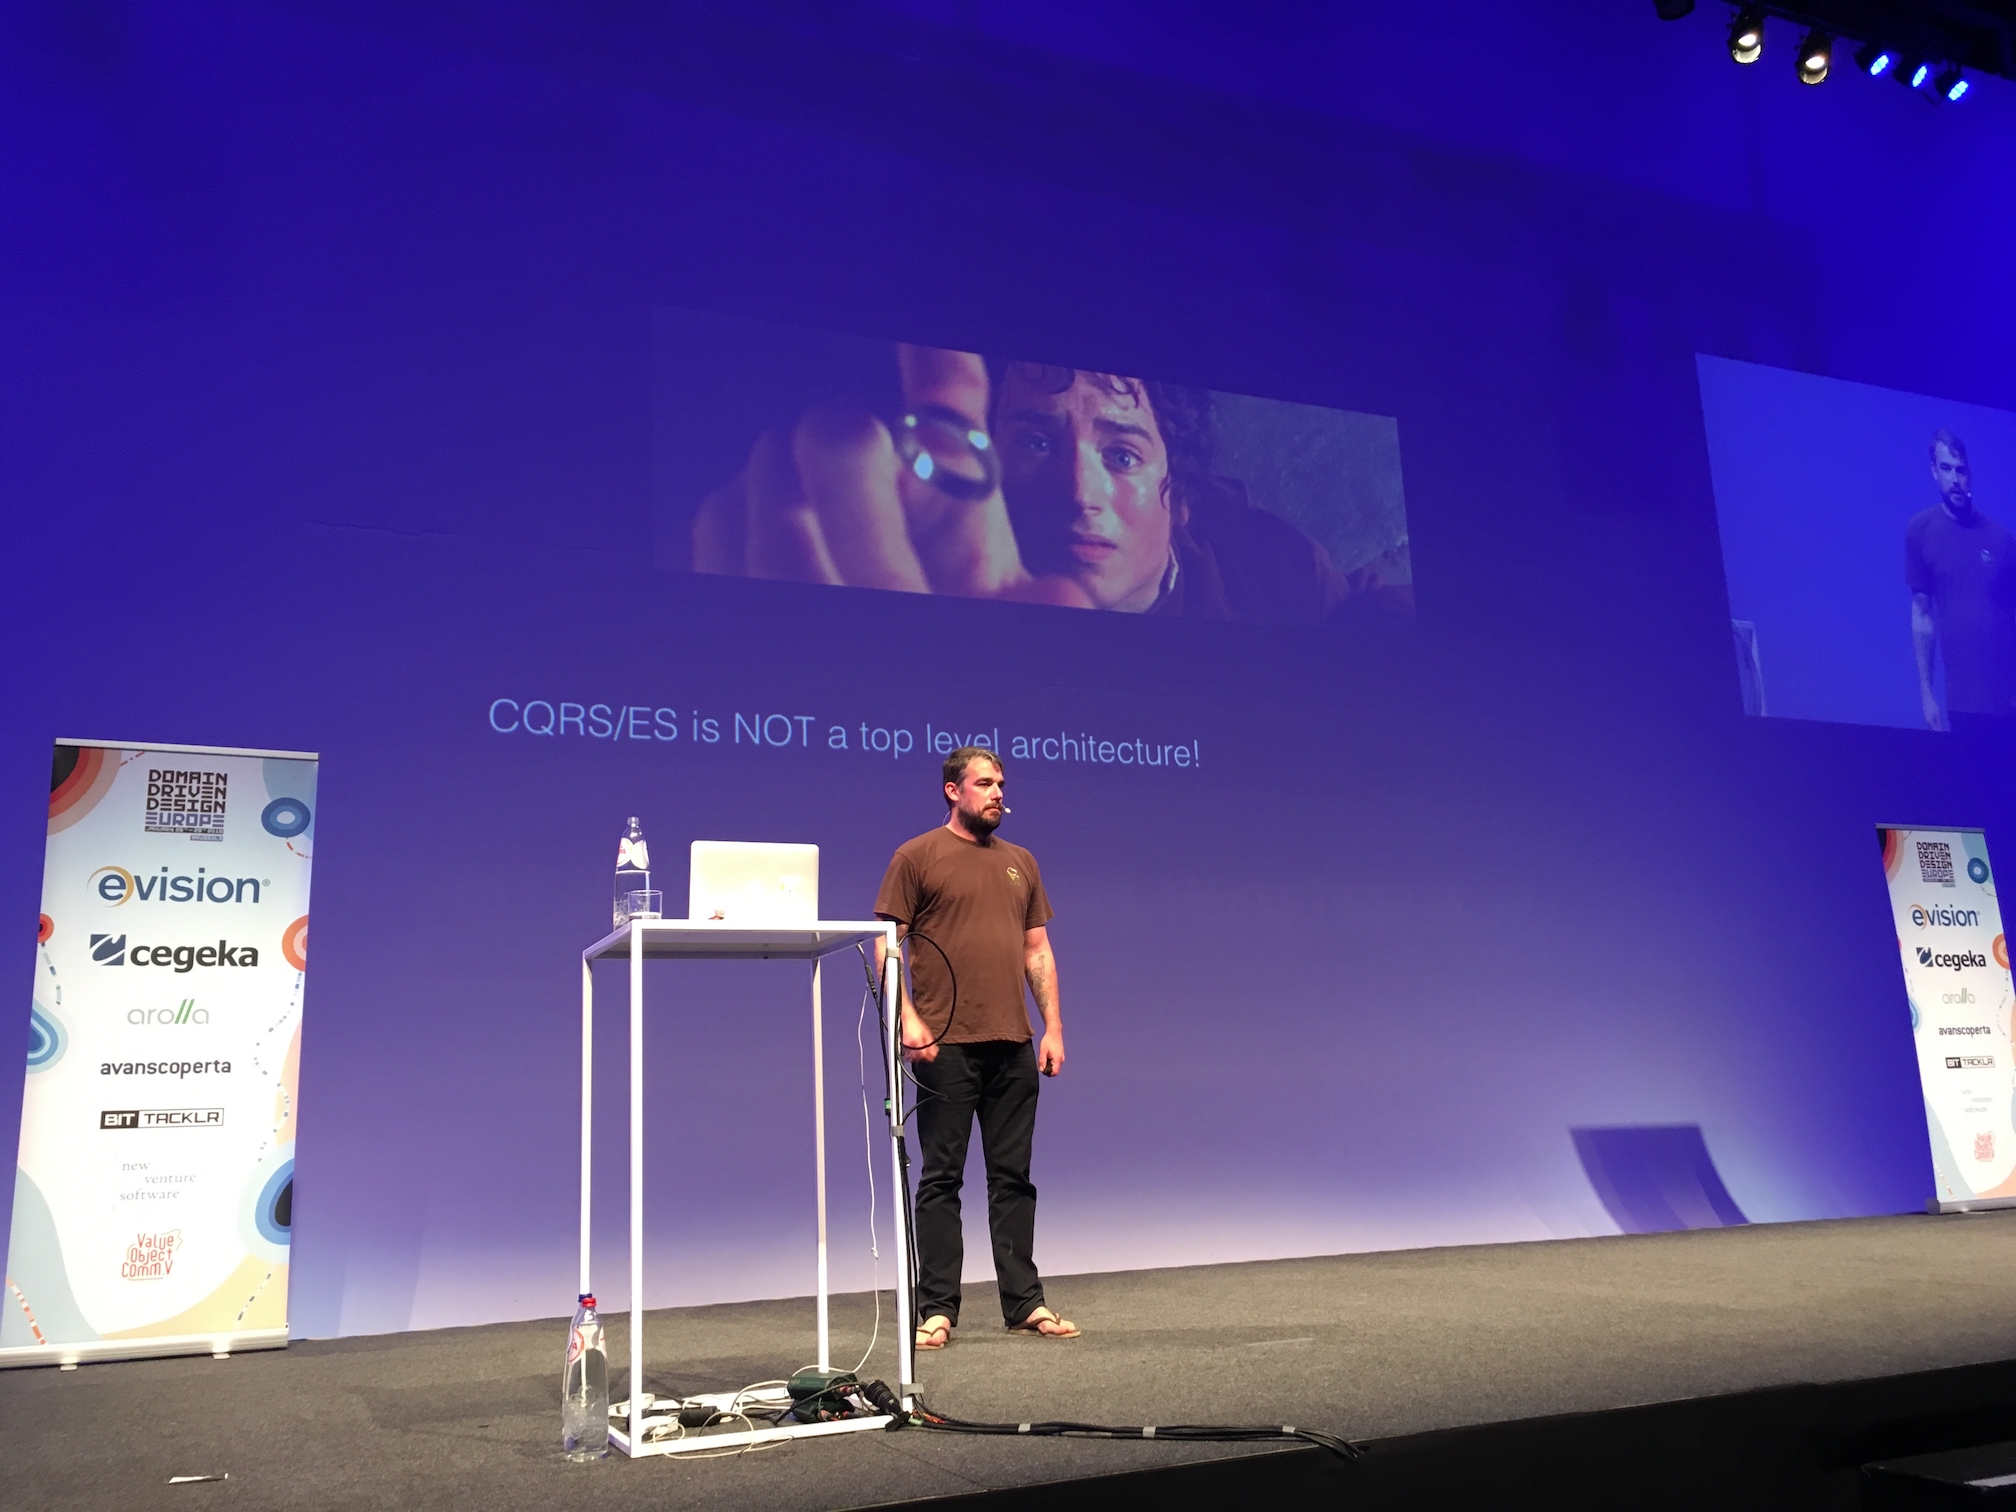 Greg Young at DDDEU 2016: CQRS/ES is NOT a top level architecture!